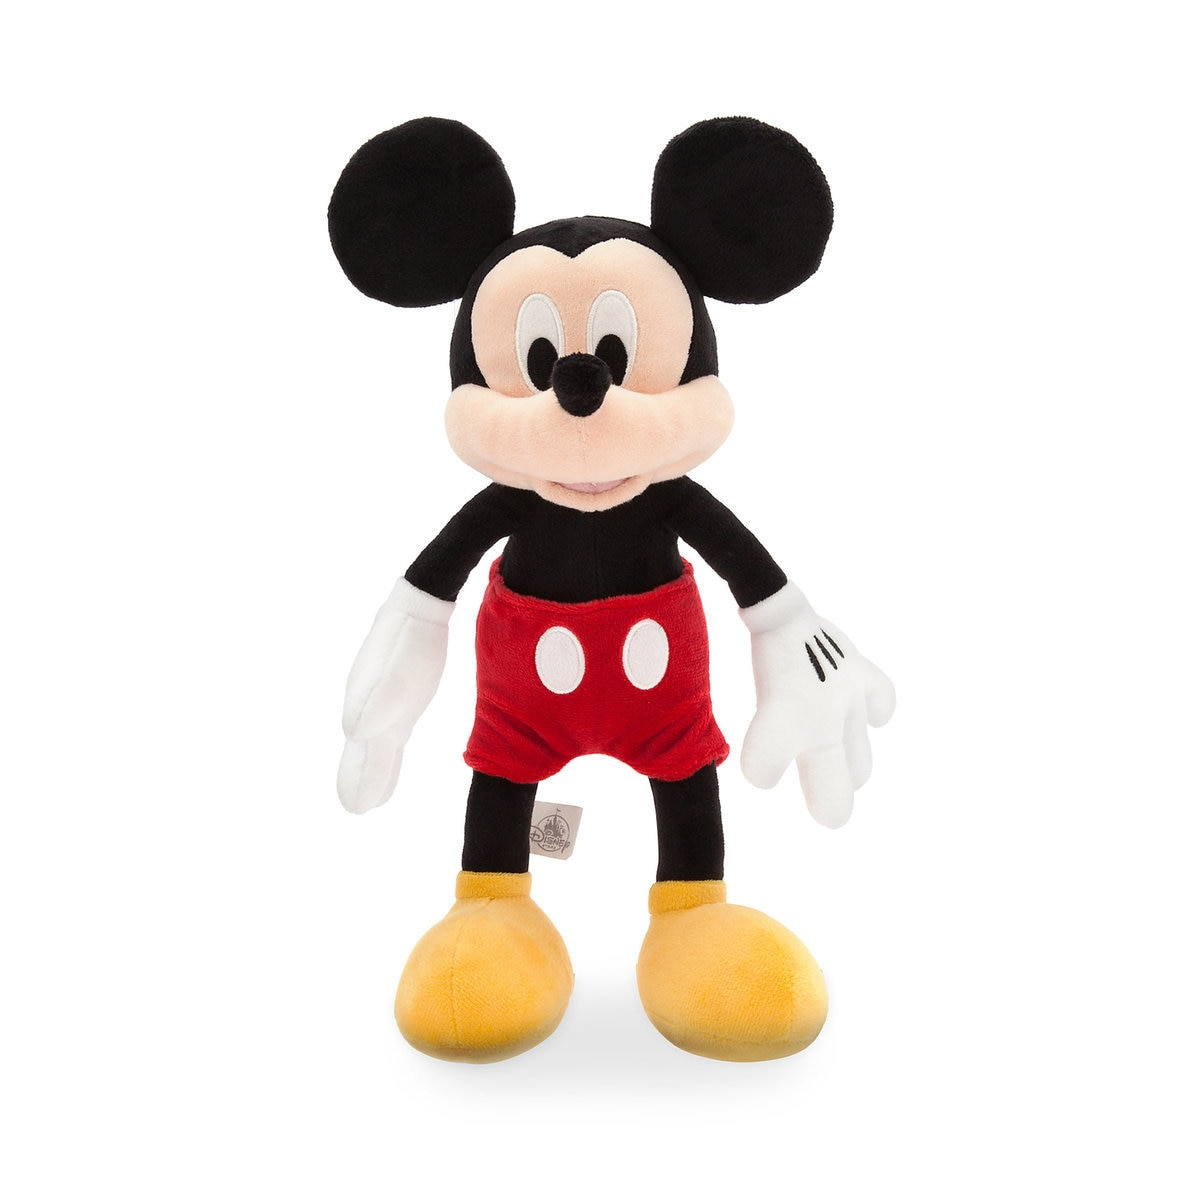 41fef3d9a0878 Product Image of Mickey Mouse Plush - Small - 13'' - Personalized # 1